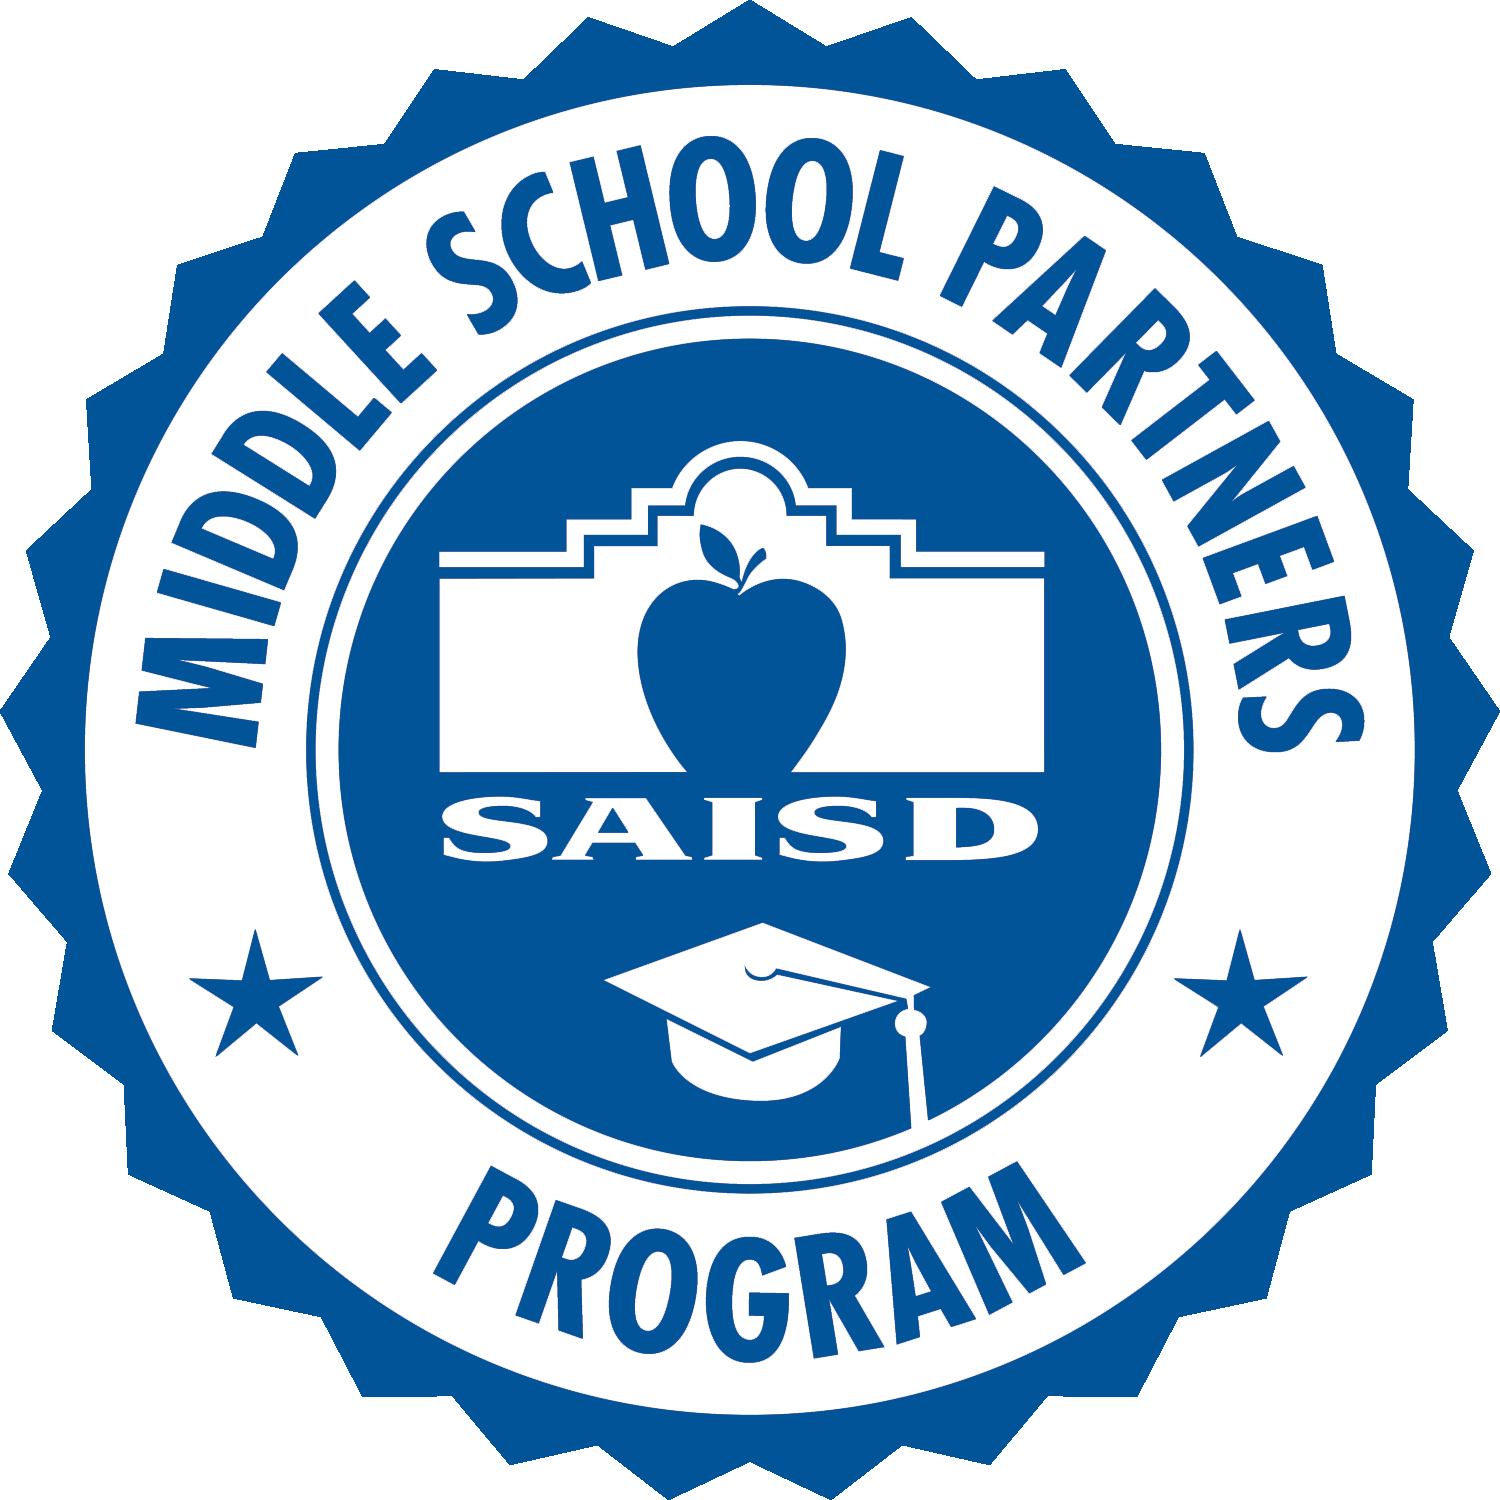 Middle School Partners Program Seal